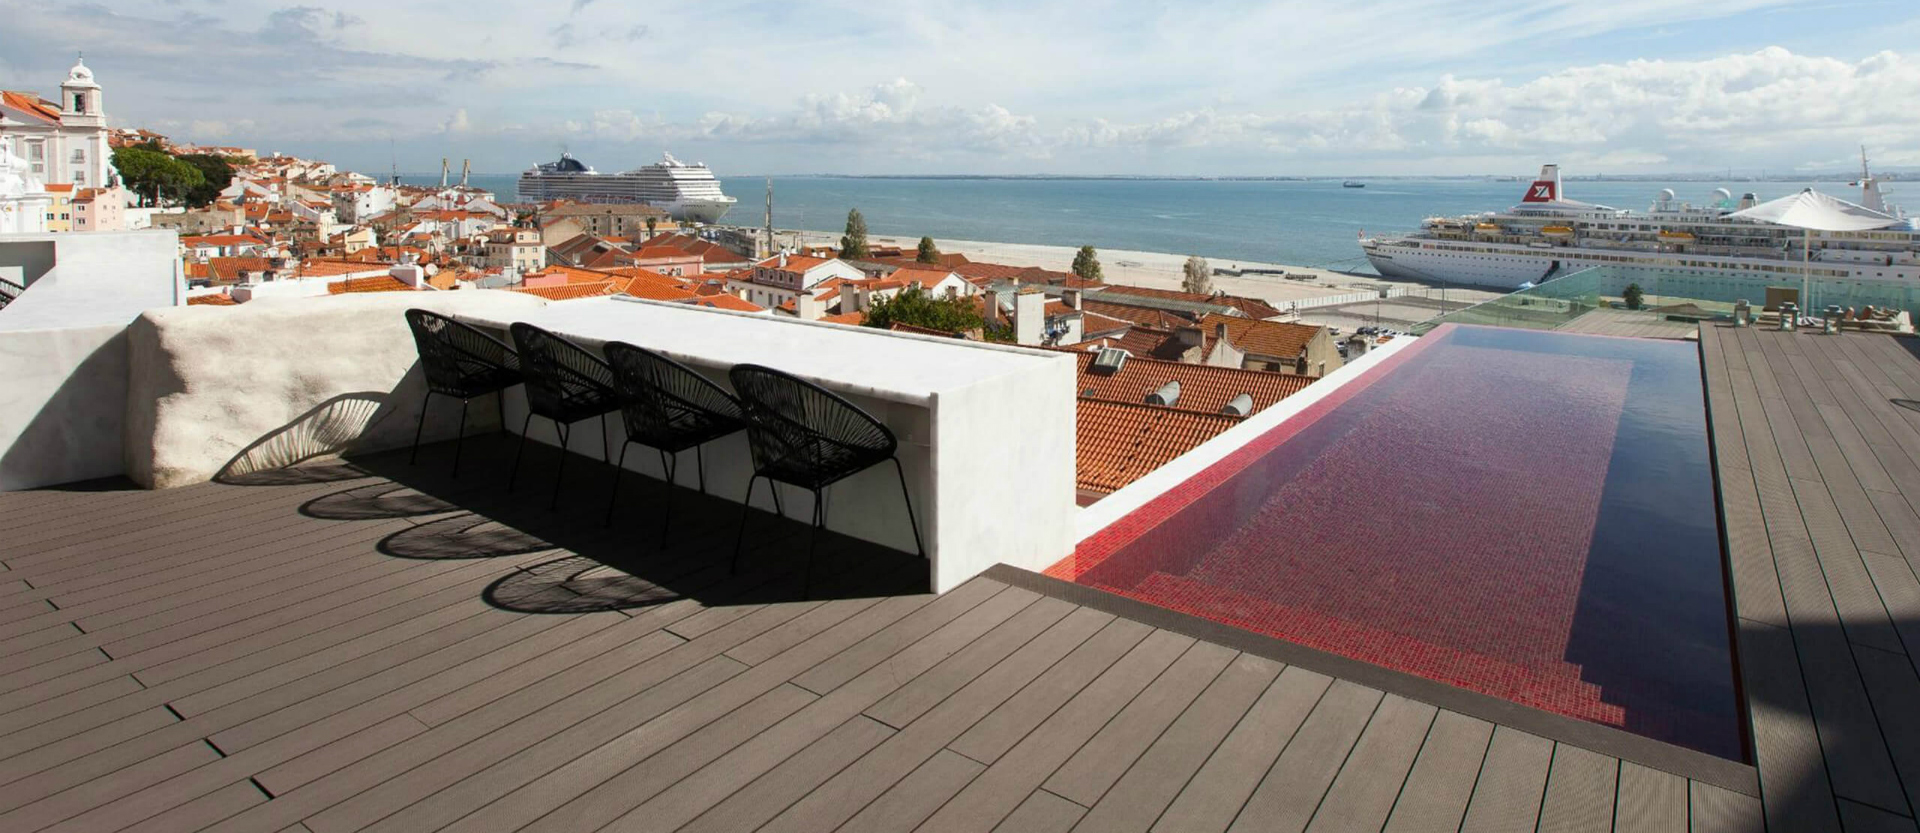 Best rooftops in Portugal: Memmo Alfama what to do in lisbon What To Do In Lisbon: 48 Hours In The Capital Carrocel 3 88